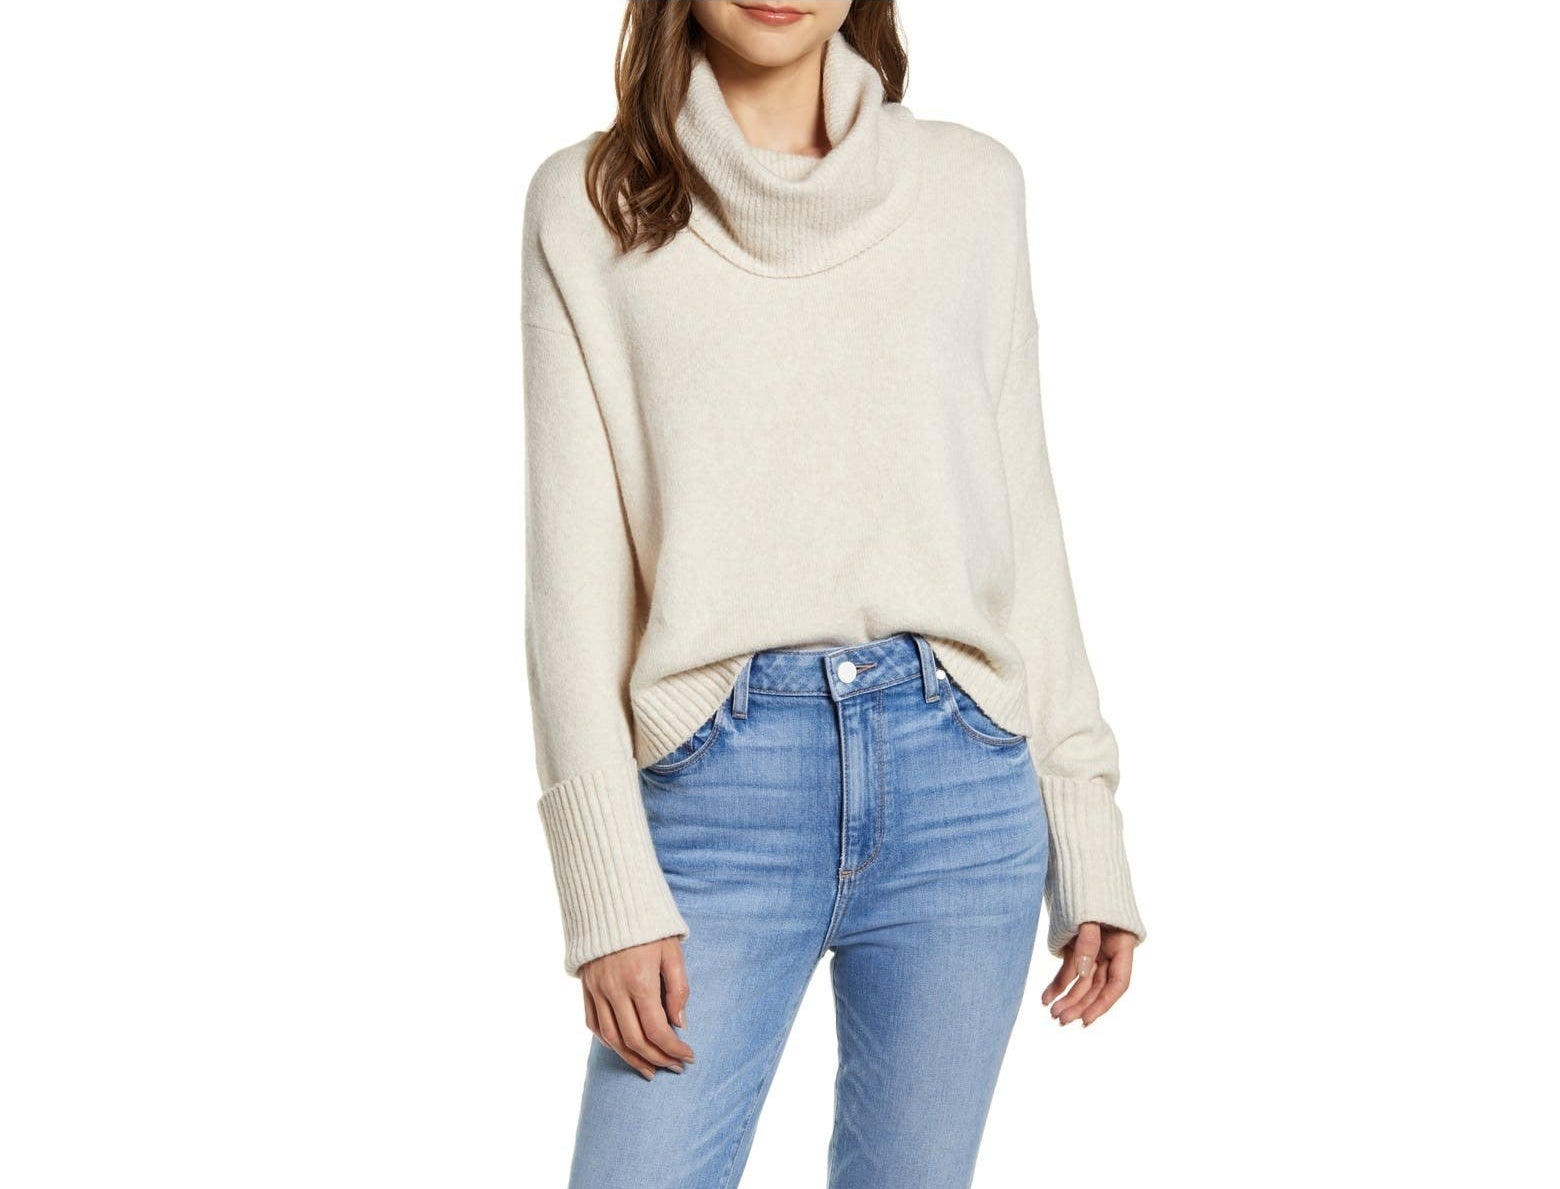 Model wearing the cream sweater tucked into jeans